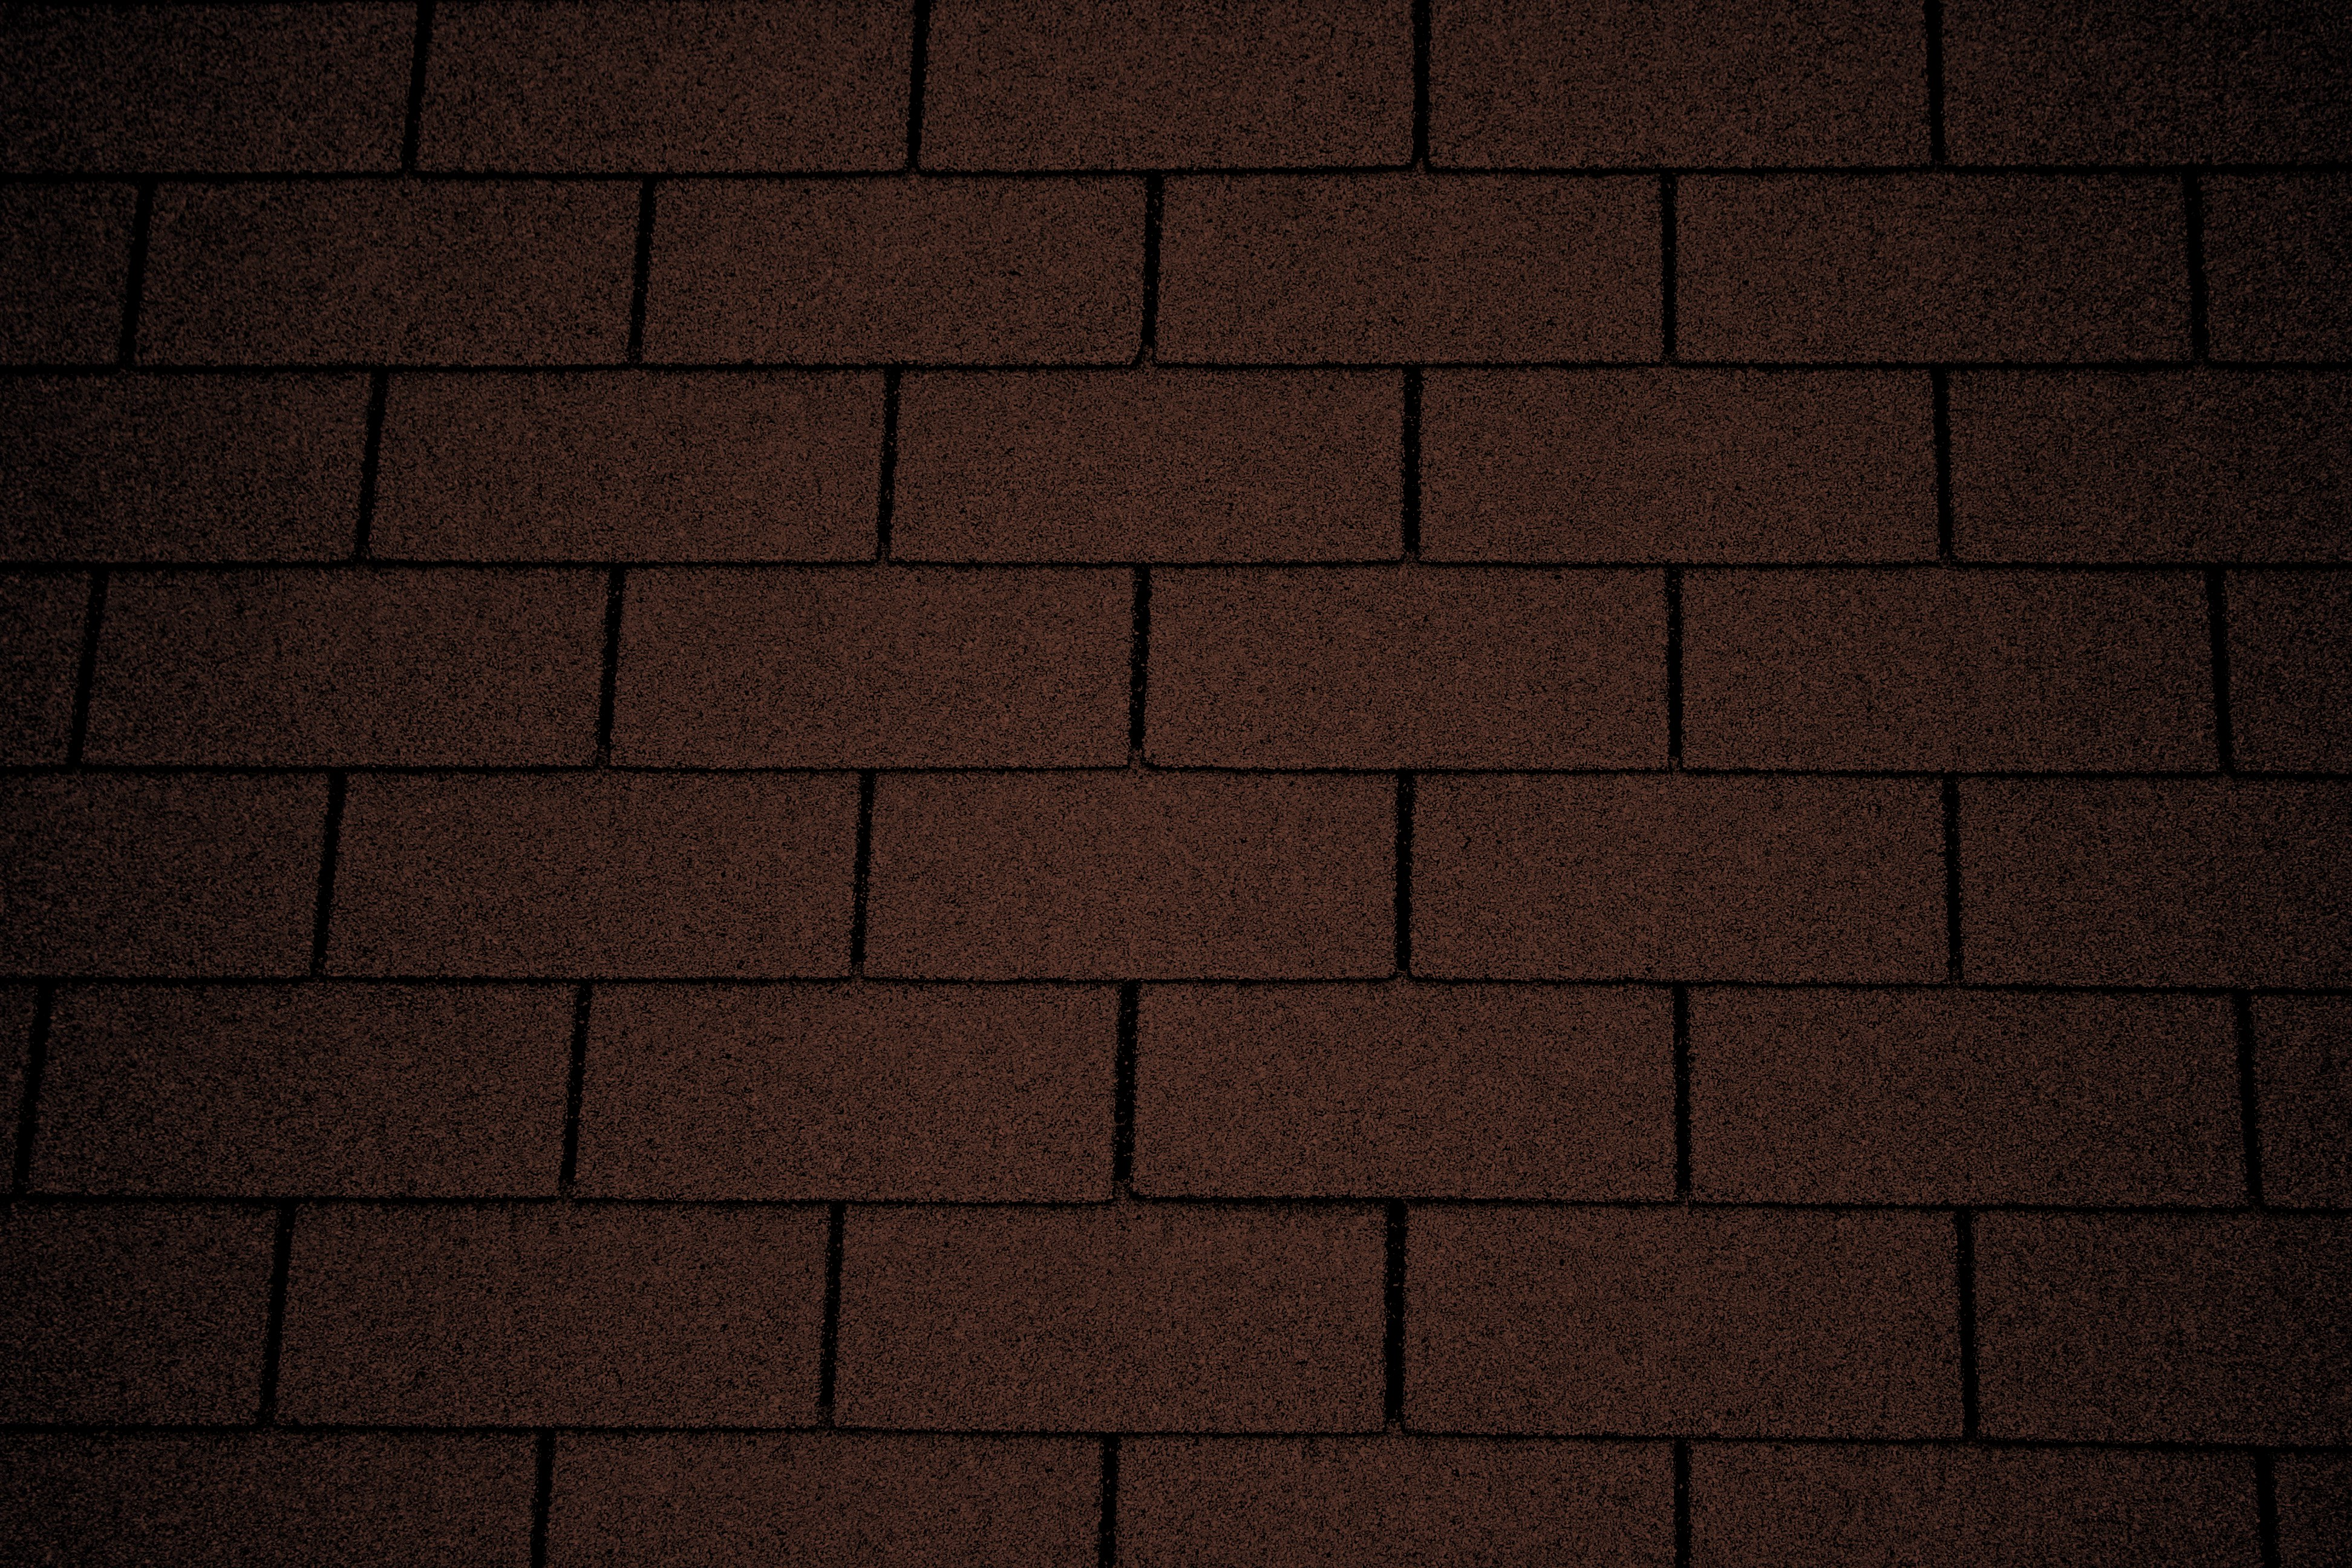 Chocolate Brown Asphalt Roof Shingles Texture Picture